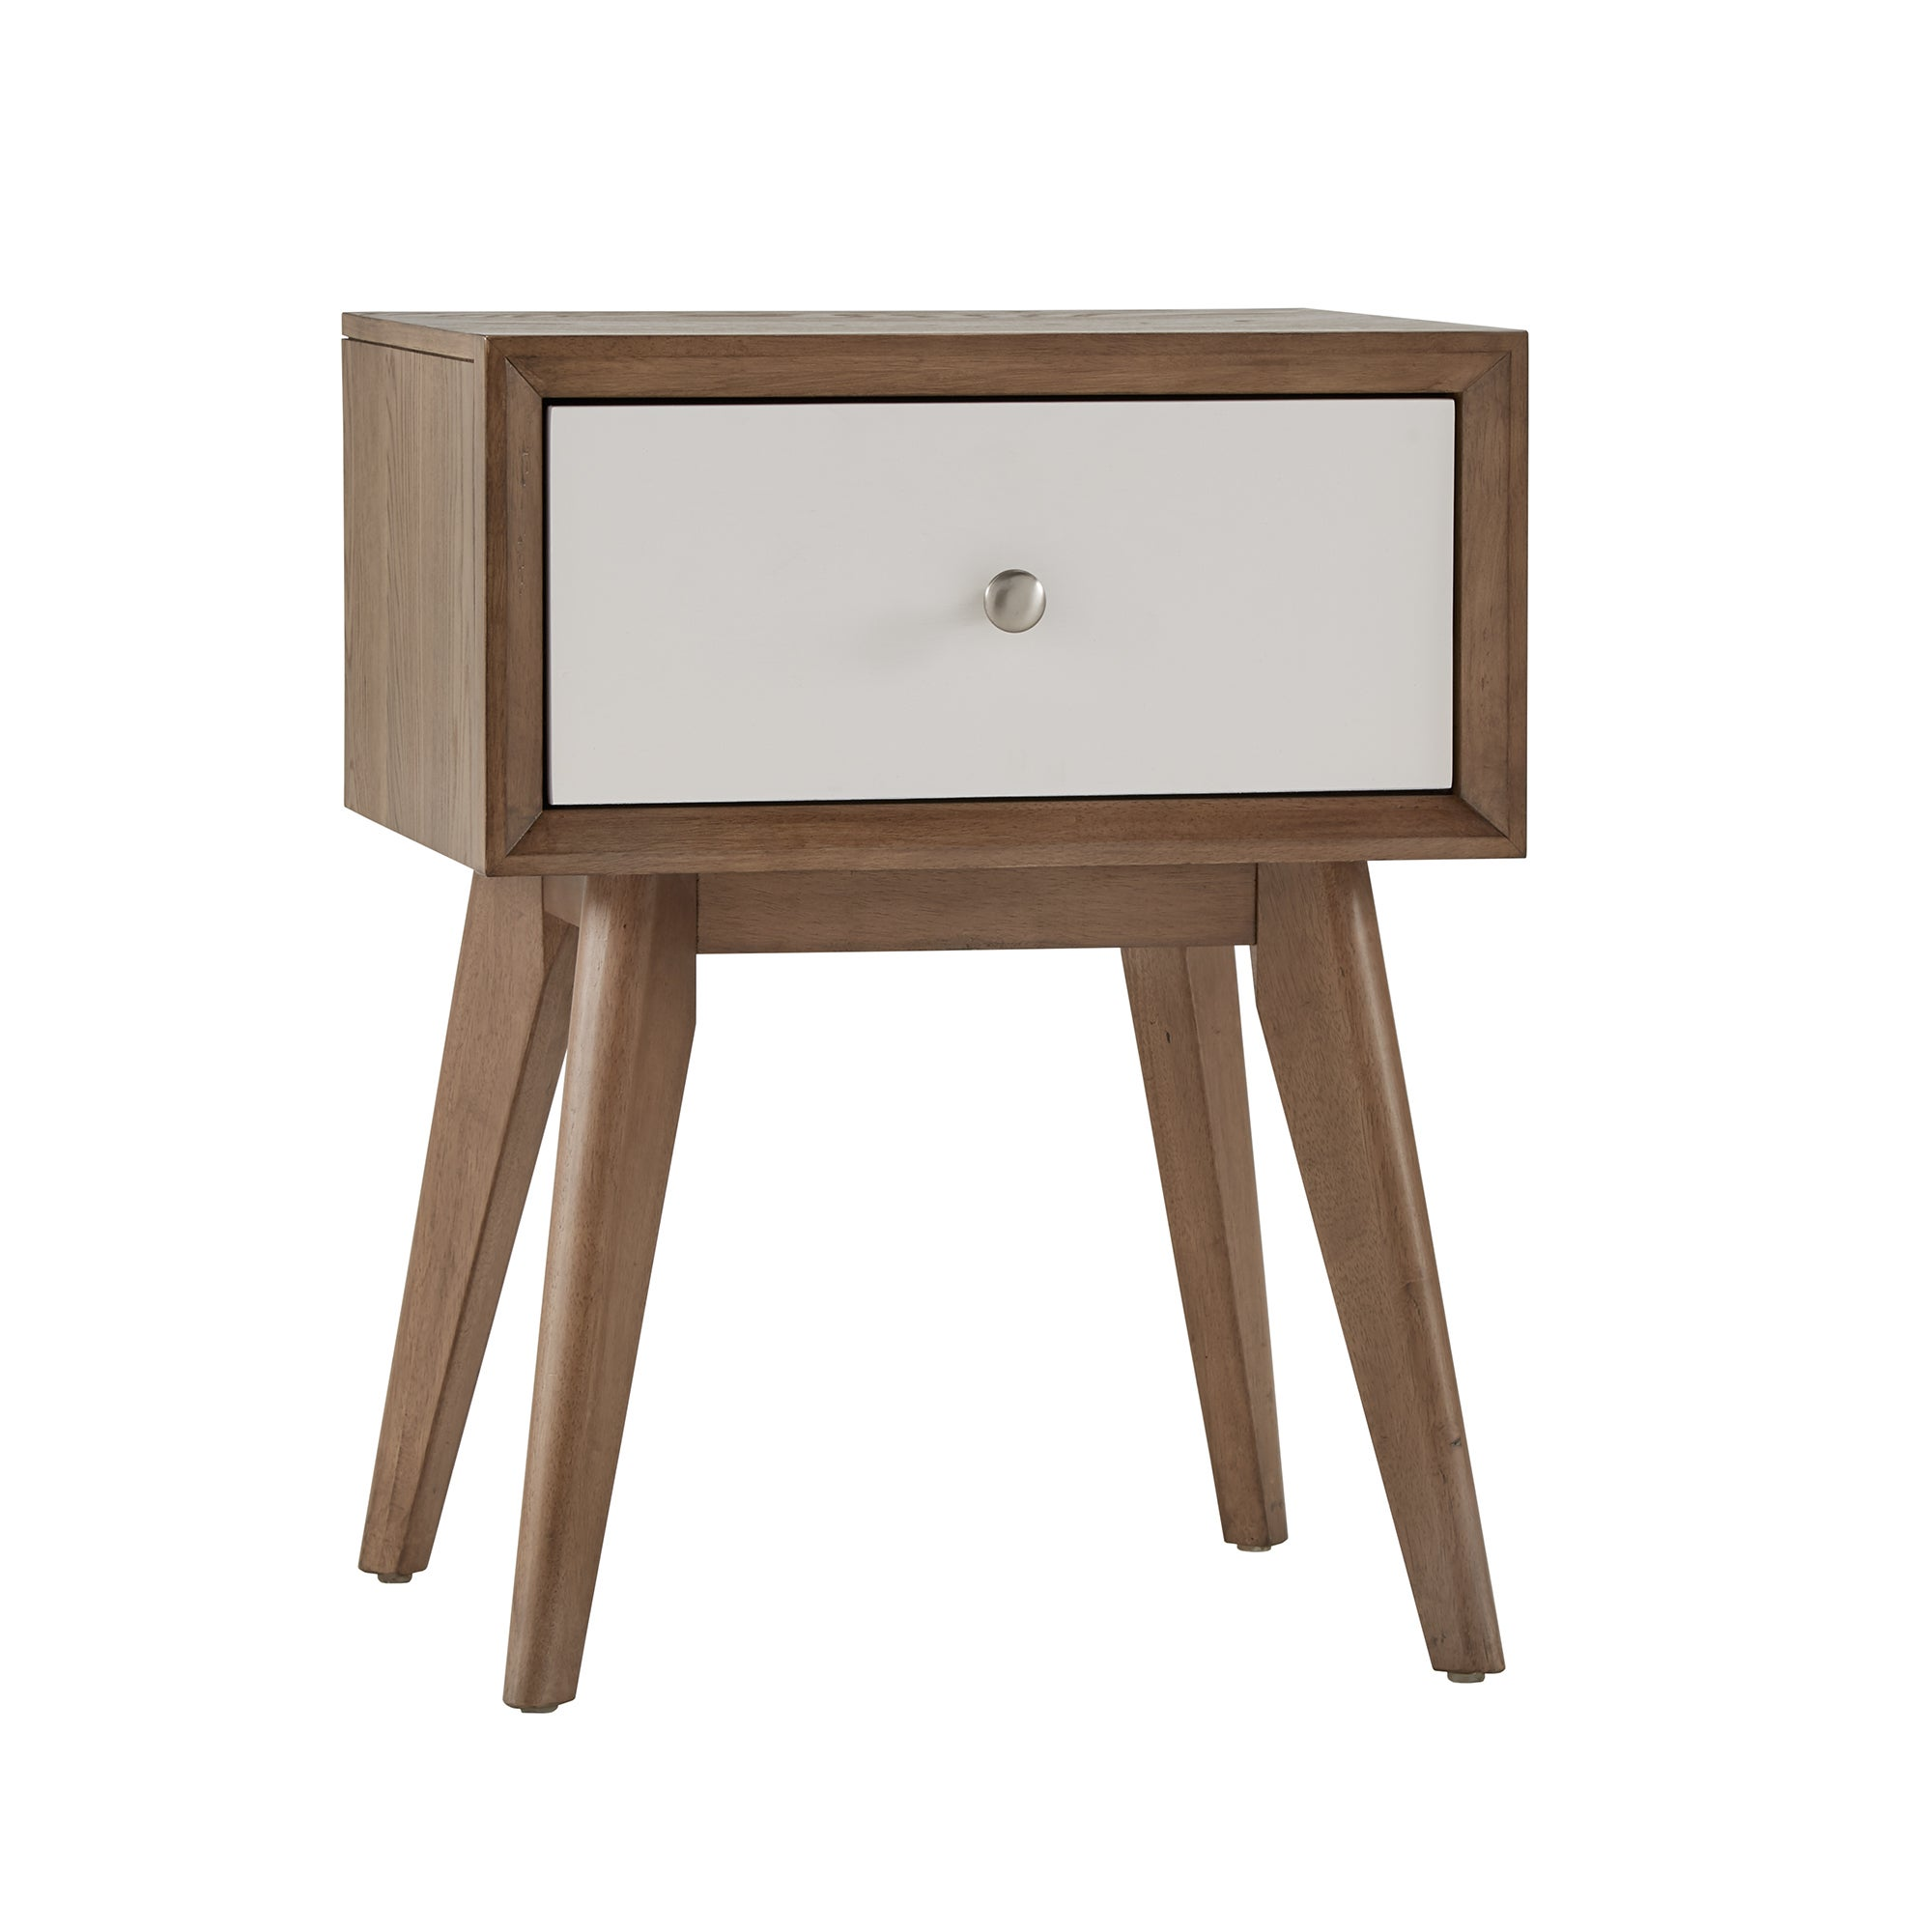 Sylvia Mid Century White And Walnut 1 Drawer Nightstand By INSPIRE Q Modern    Free Shipping Today   Overstock.com   24174750